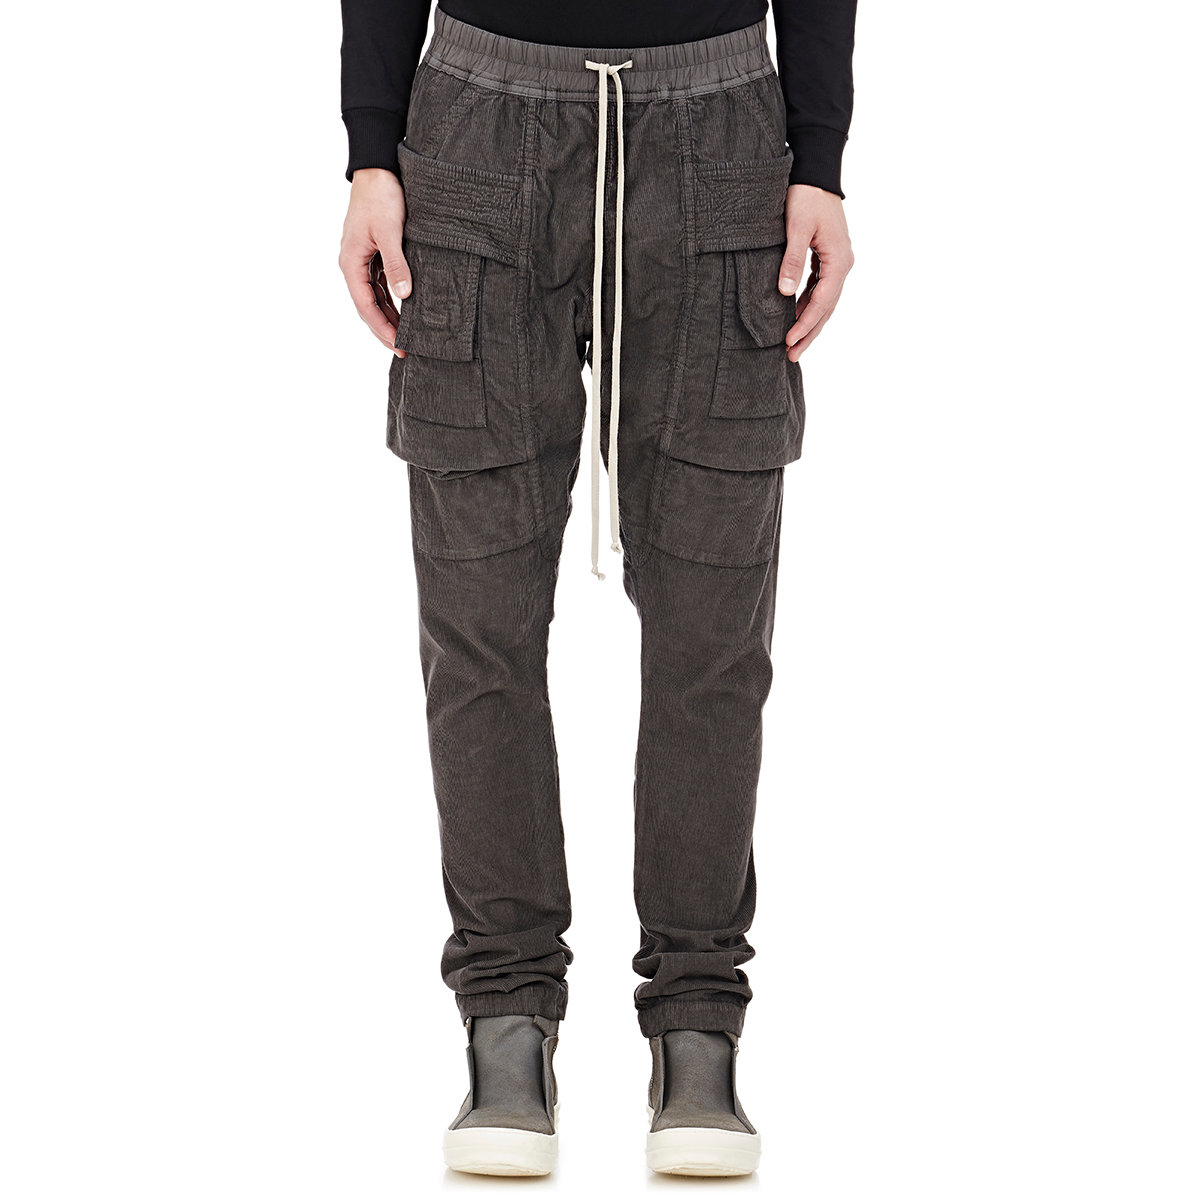 af1d20147c6a Lyst - DRKSHDW by Rick Owens Creatch Cargo Pants in Gray for Men